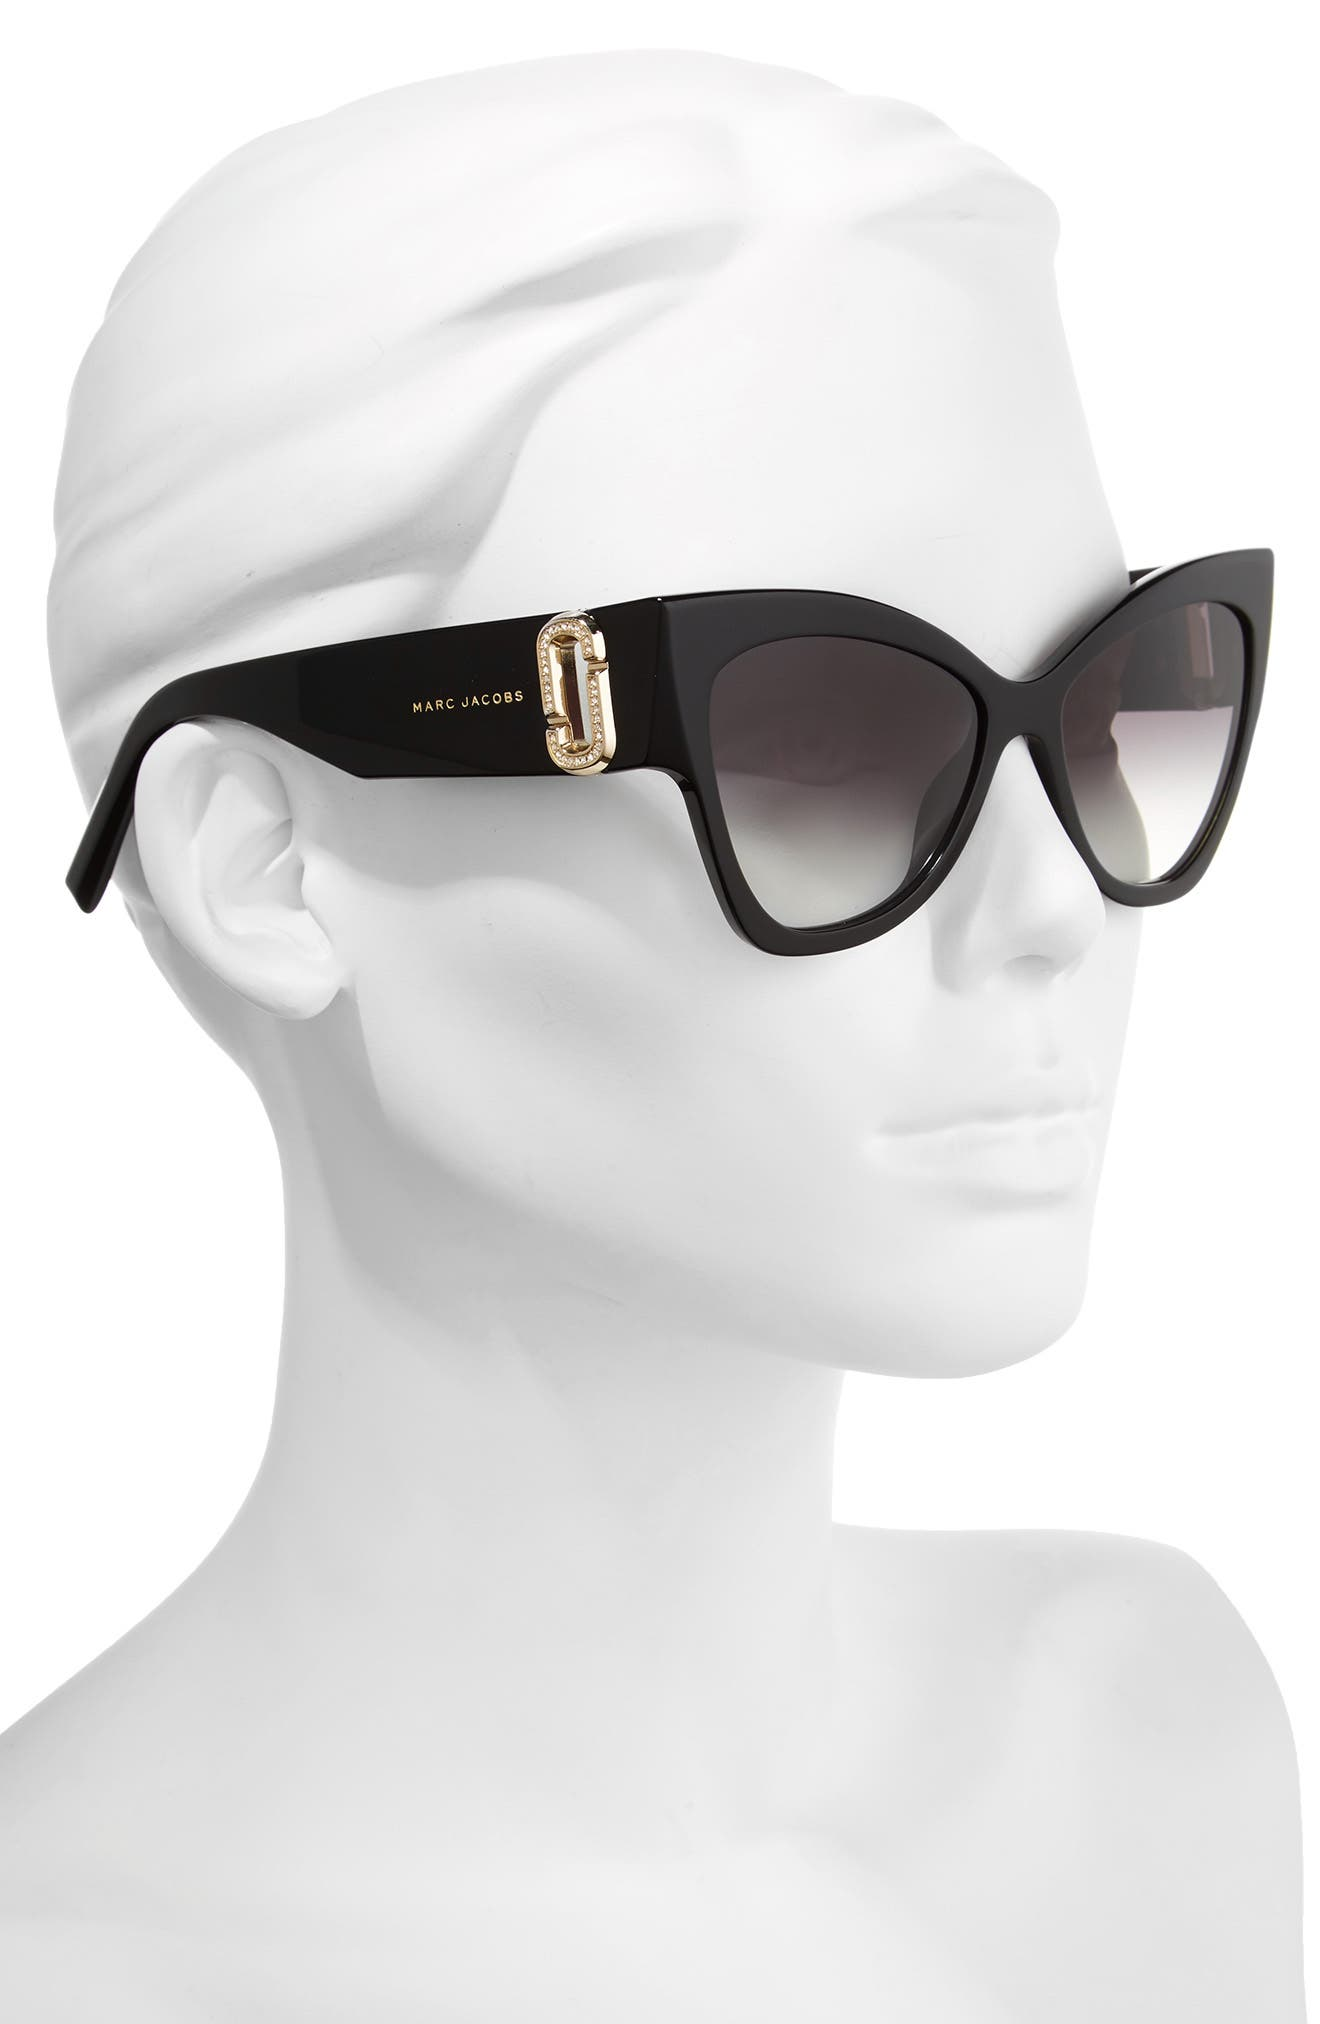 54mm Cat Eye Sunglasses,                             Alternate thumbnail 2, color,                             001